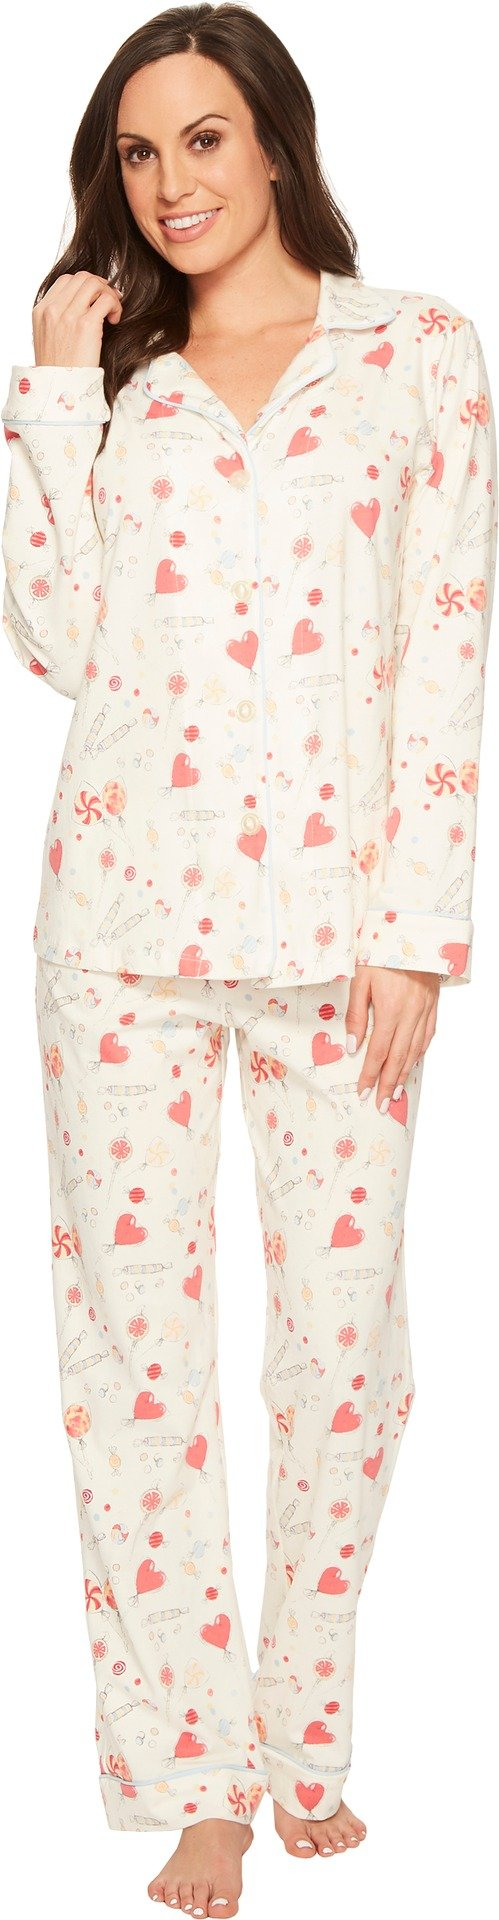 BedHead Women's Long Sleeve Classic Stretch Knit Pajama Set Sweet Tooth Large